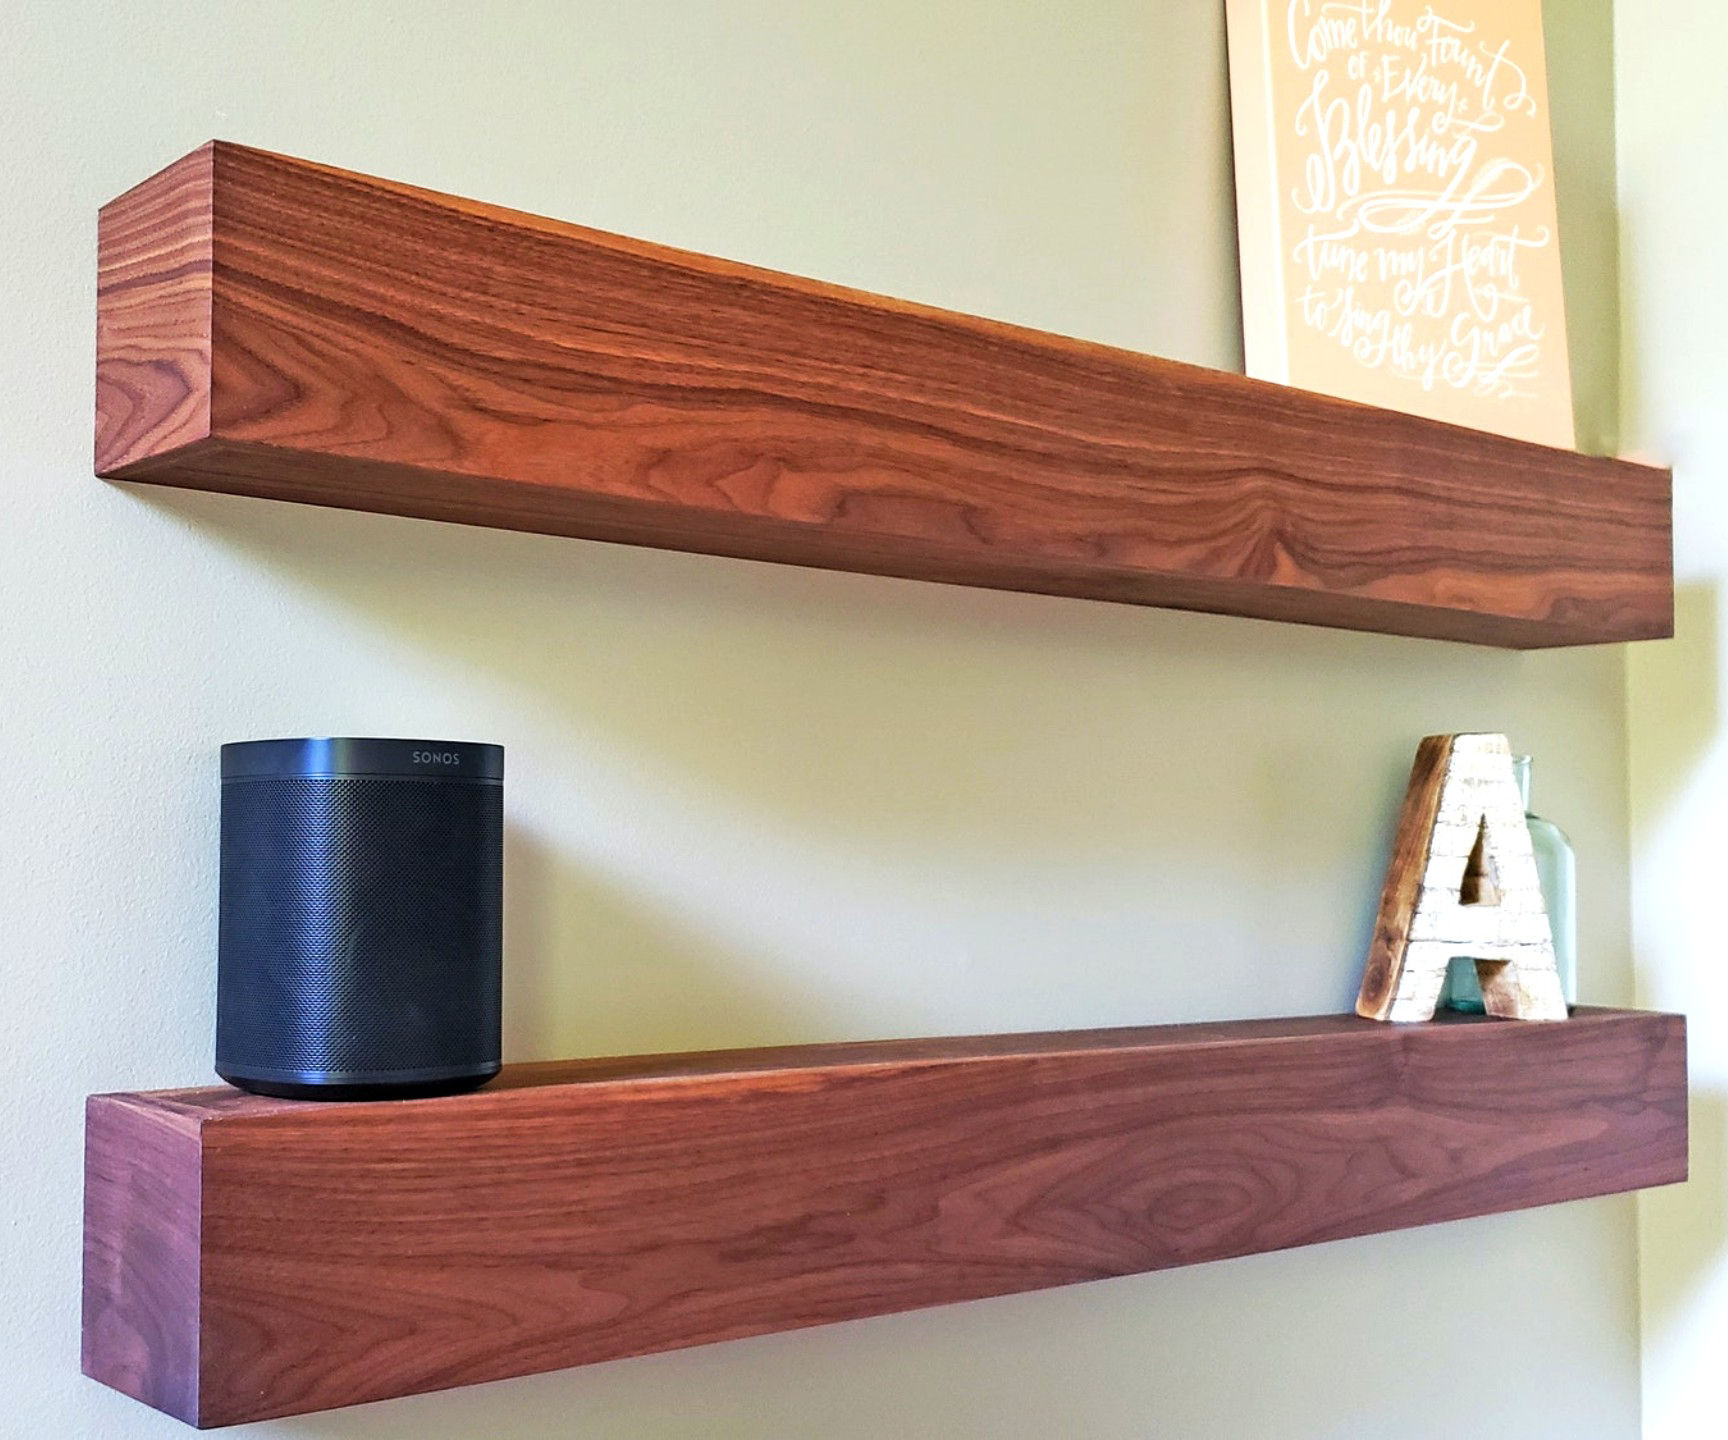 DIY Floating Shelves With Waterfall Ends!